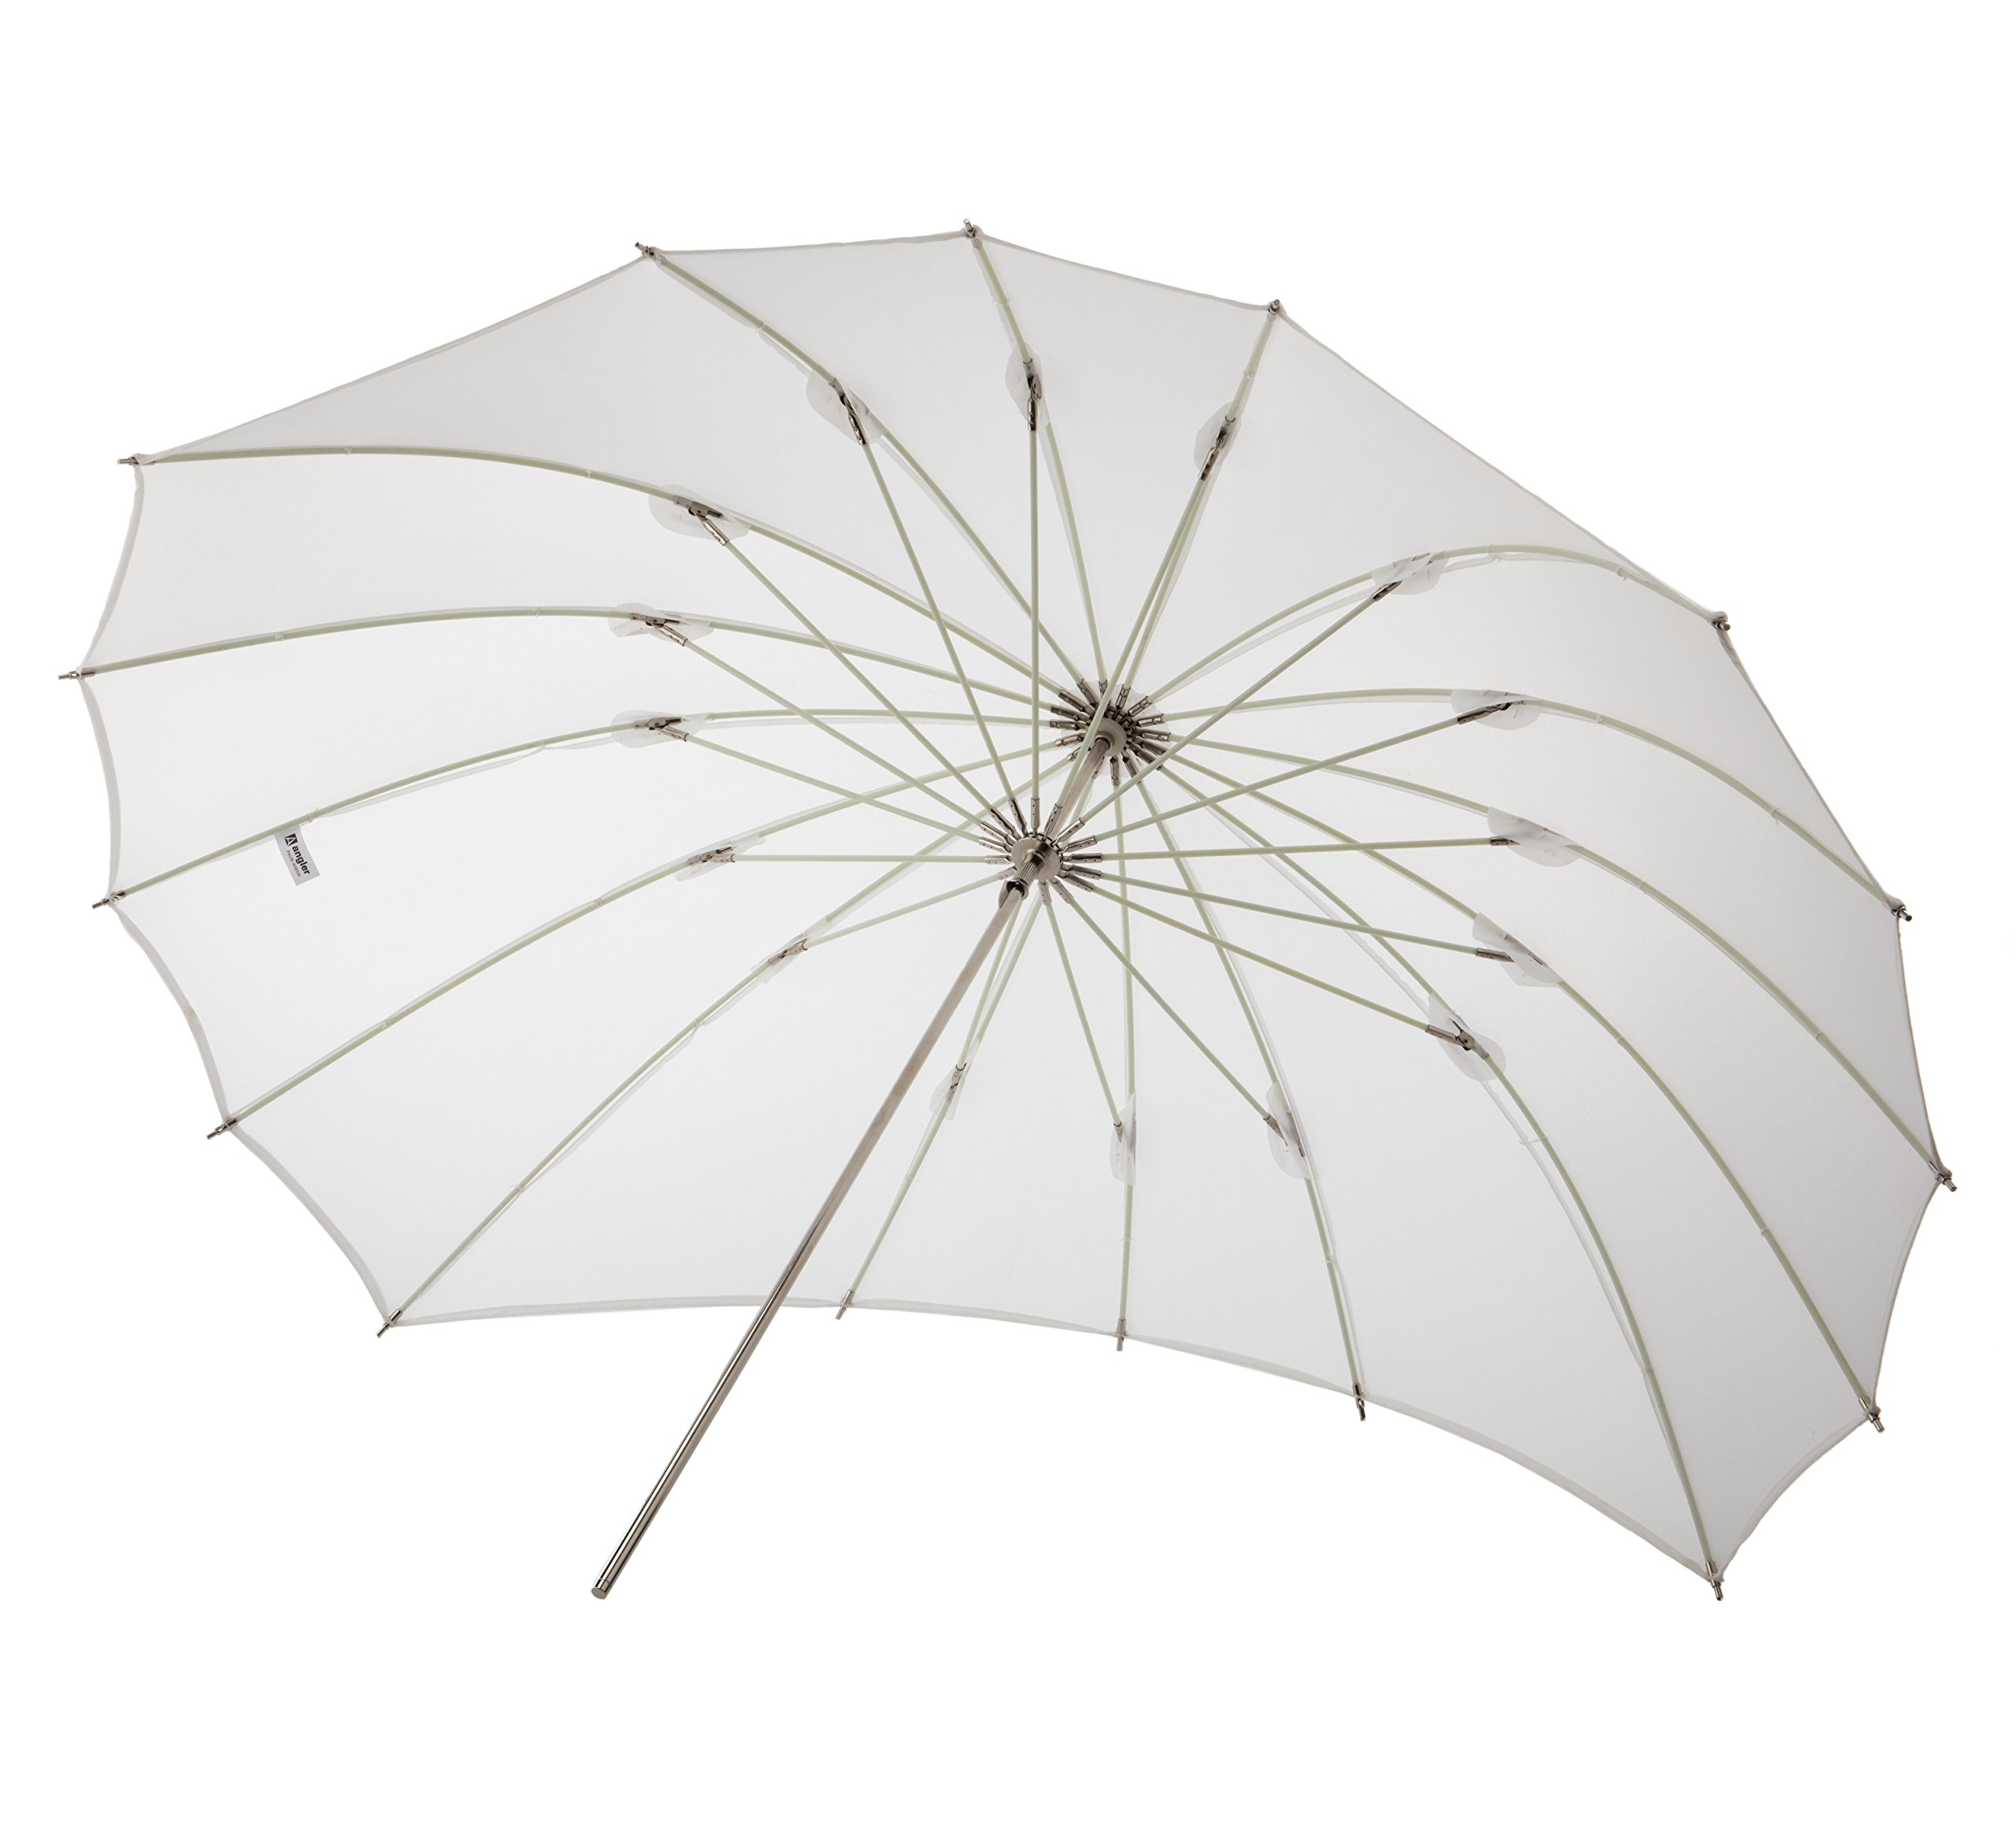 Angler ParaSail Parabolic Umbrella (White with Removable Black/Silver, 45'''')'' by Angler (Image #4)